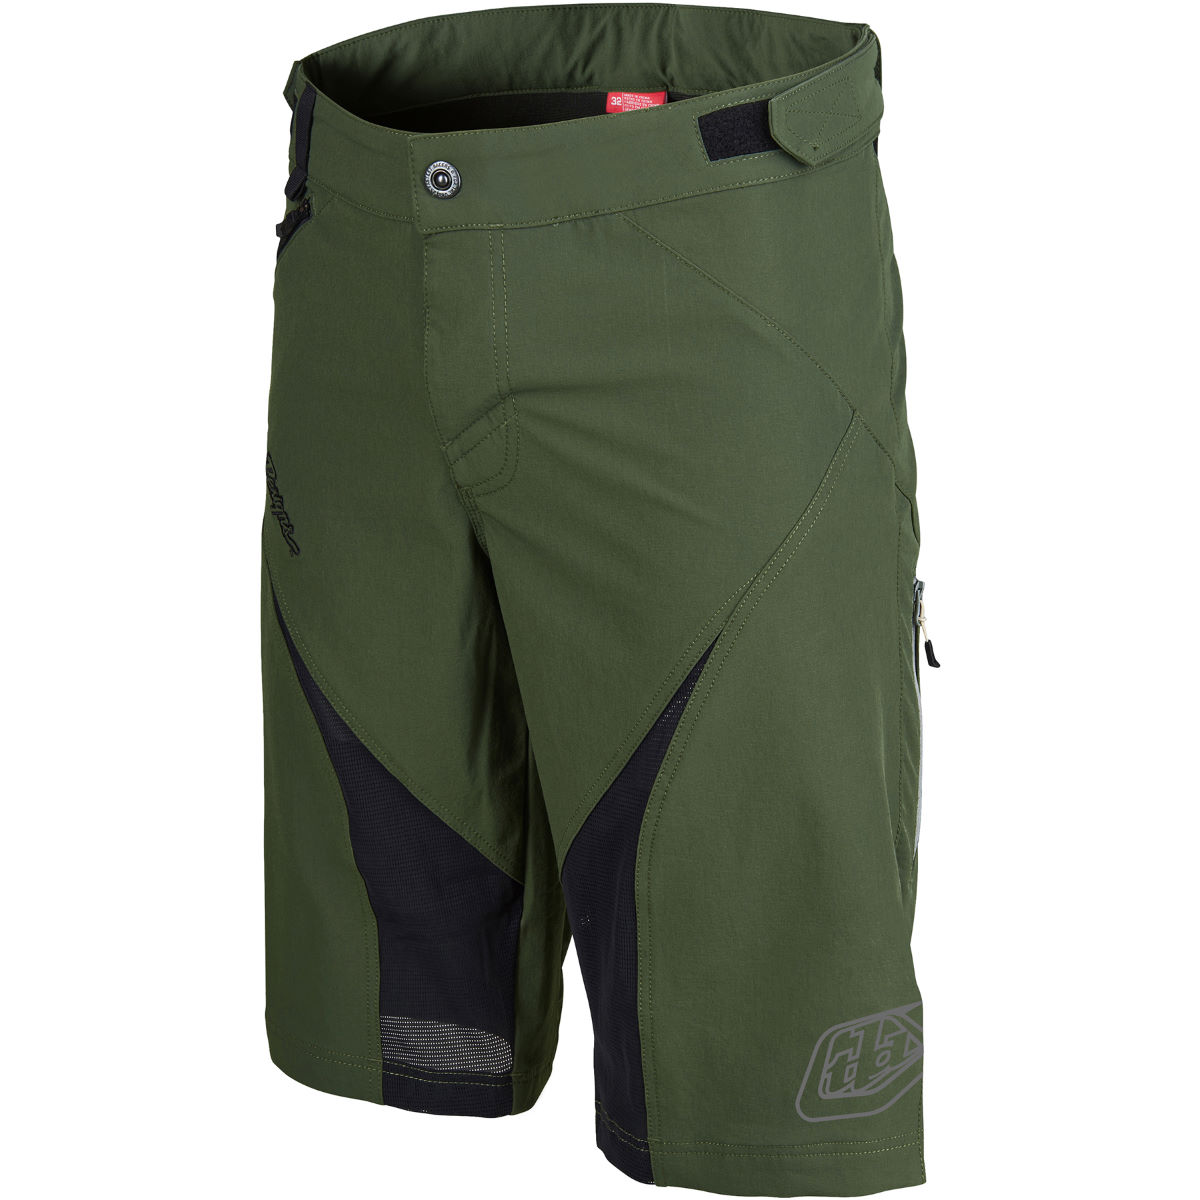 Short Troy Lee Designs Terrain - 28 Army Green Shorts amples